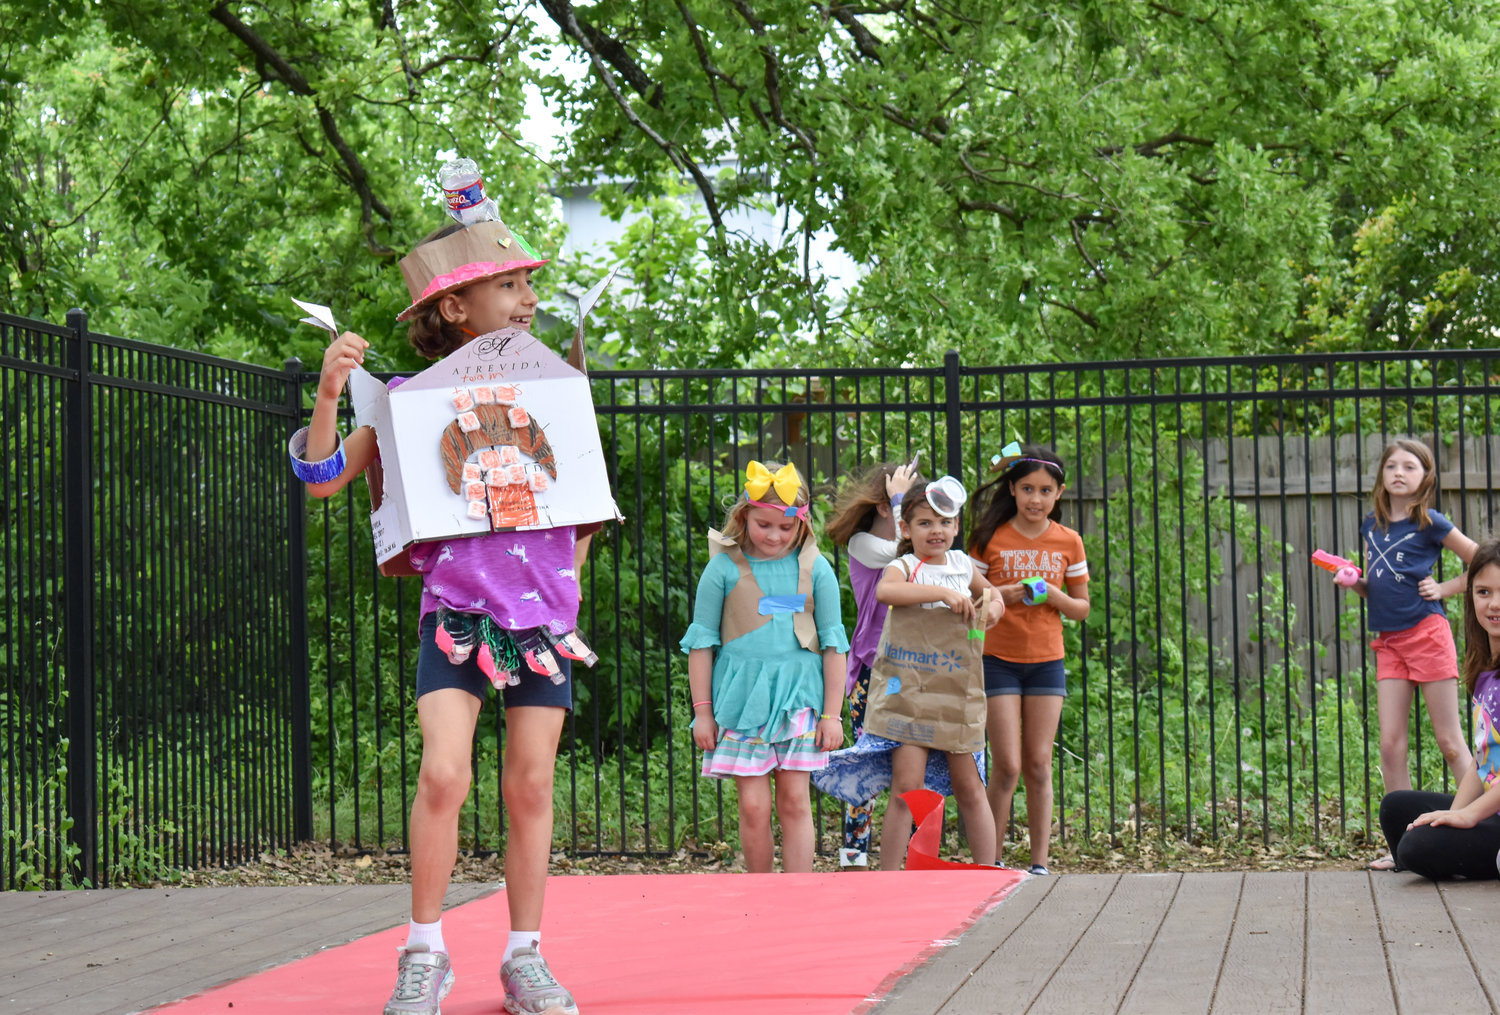 Julianna Fontaine, age 7, walks the runway during the 9th Annual Root for Earth campaign at The Goddard School in Cedar Park on Monday, April 22, 2019.